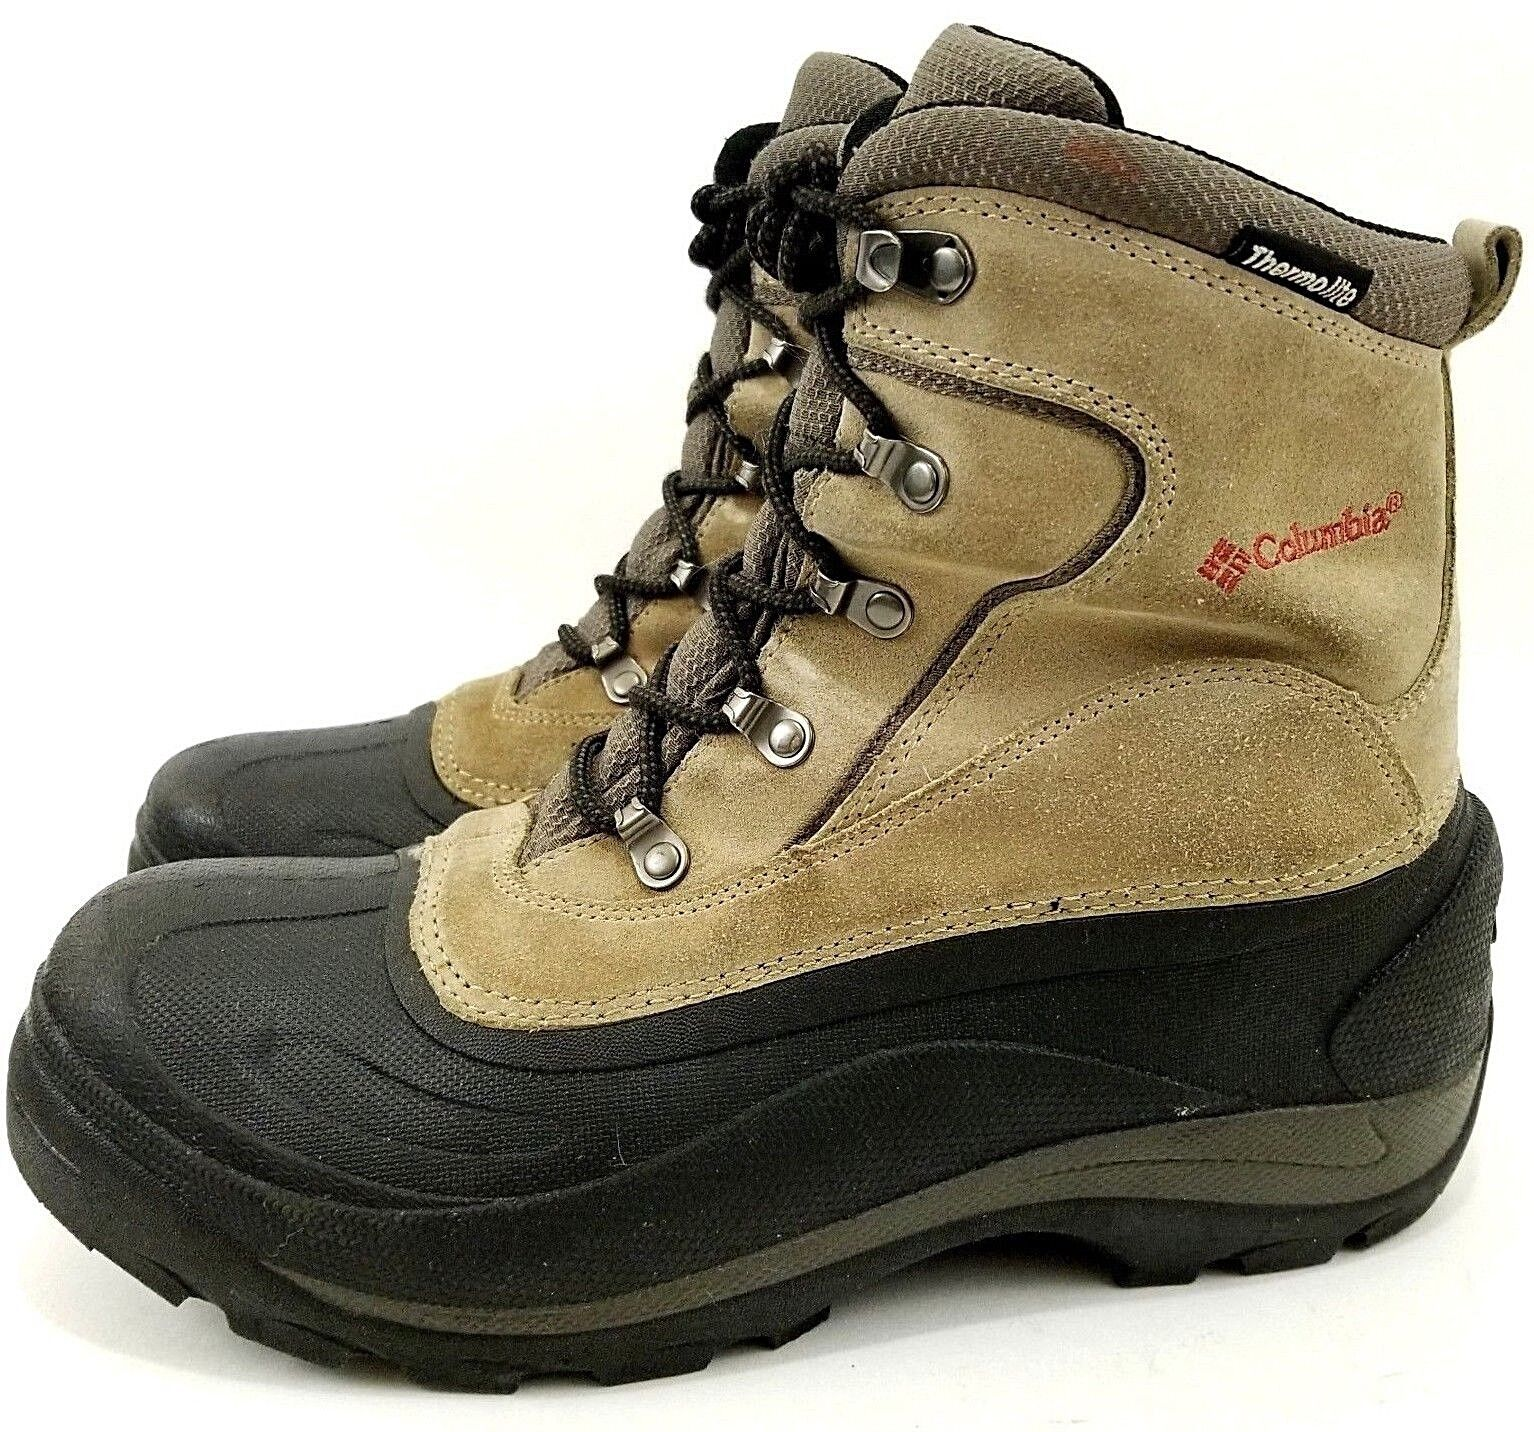 COLUMBIA CASCADIAN SUMMIT LEATHER RUBBER WATER RESISTANT THERMOLITE SNOW BOOTS 9